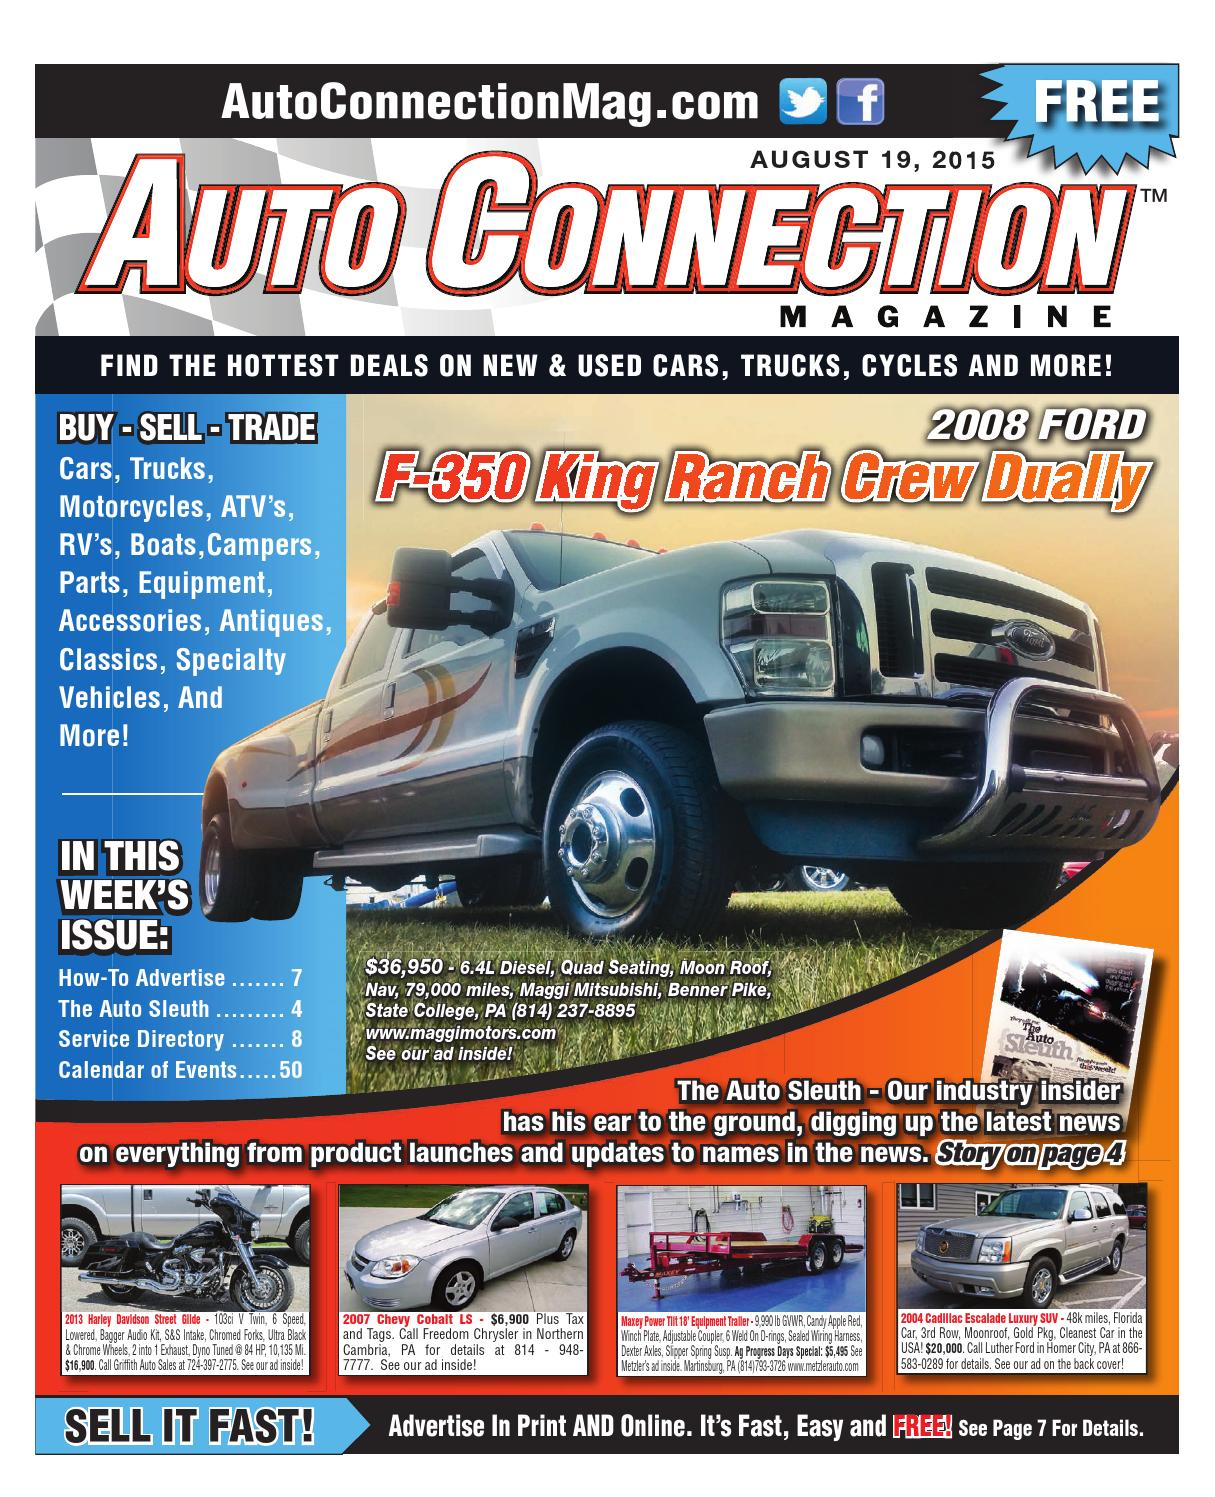 08 19 15 Auto Connection Magazine By Issuu Wiring Harness For Power Wheels